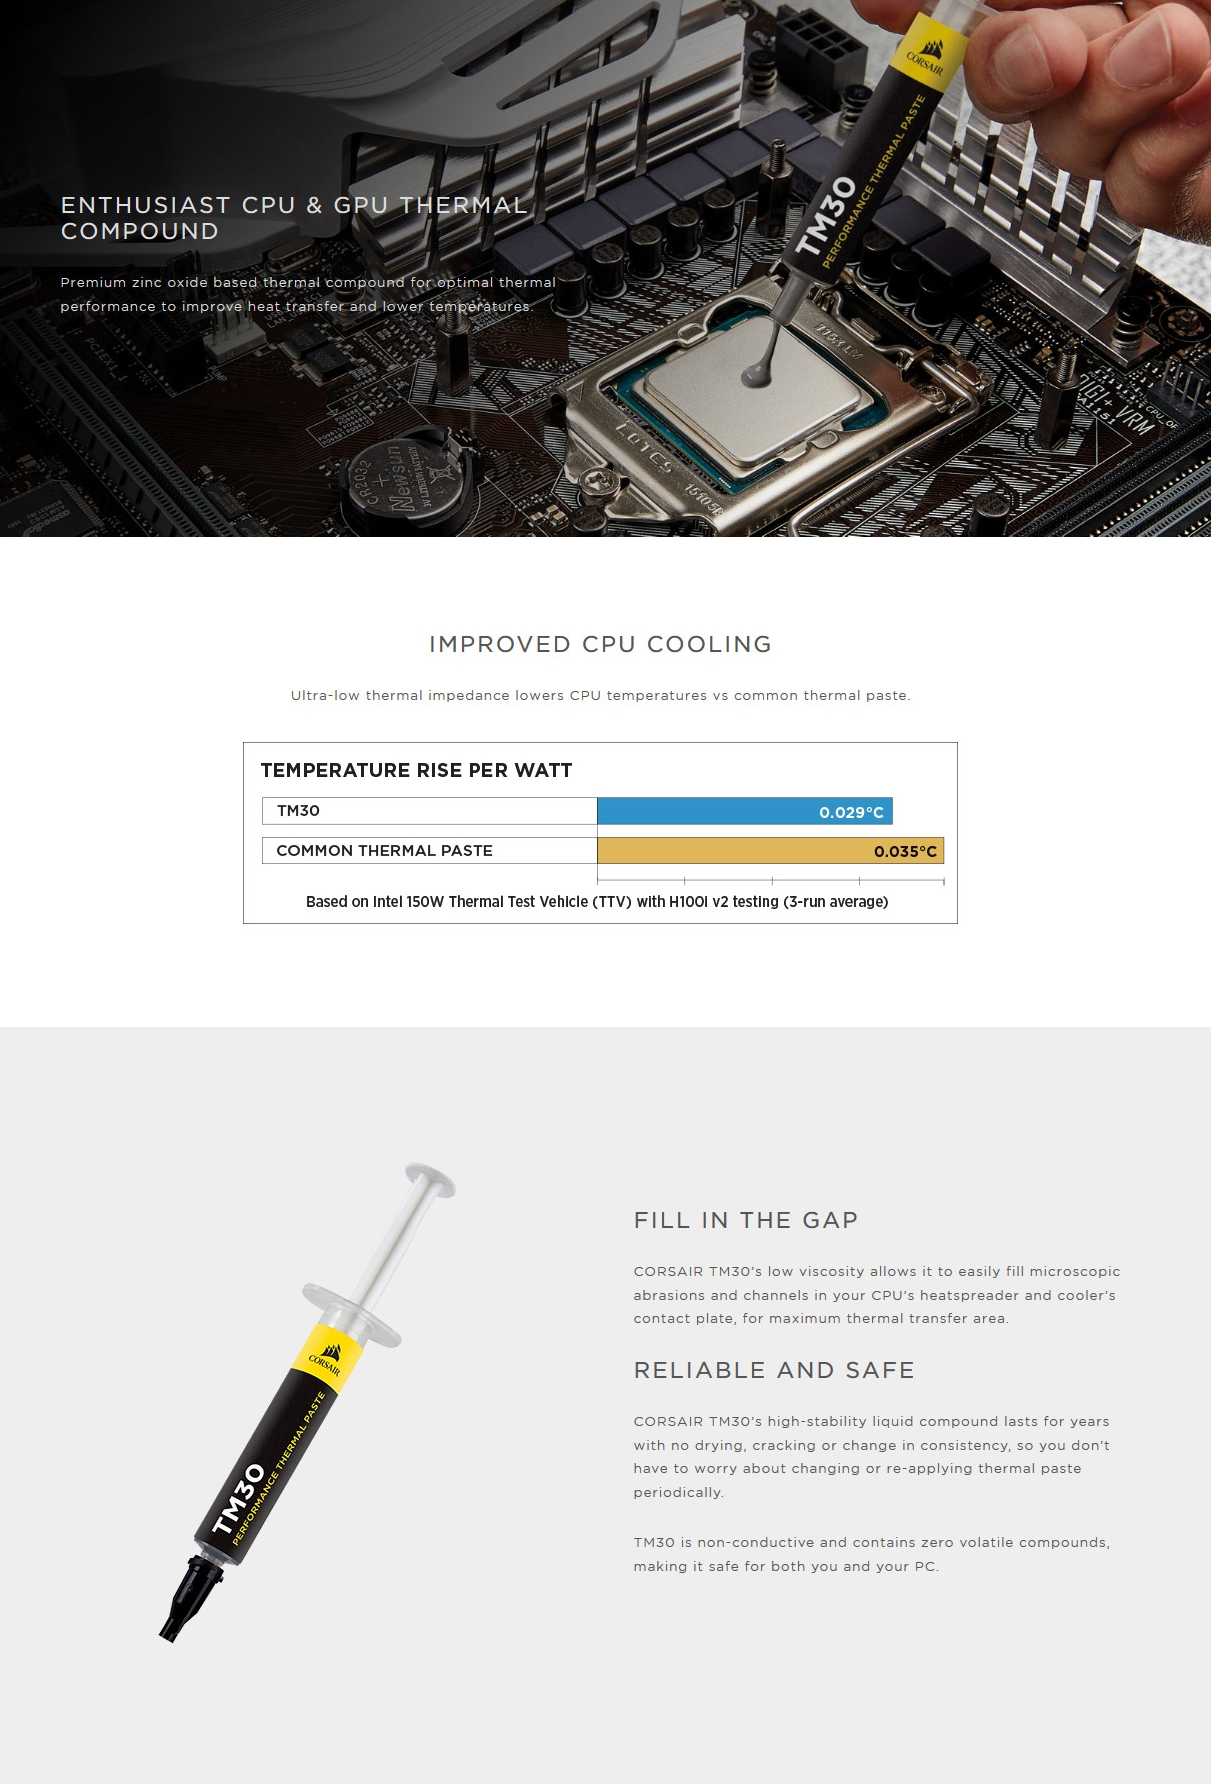 A large marketing image providing additional information about the product Corsair TM30 Performance Thermal Paste - Additional alt info not provided